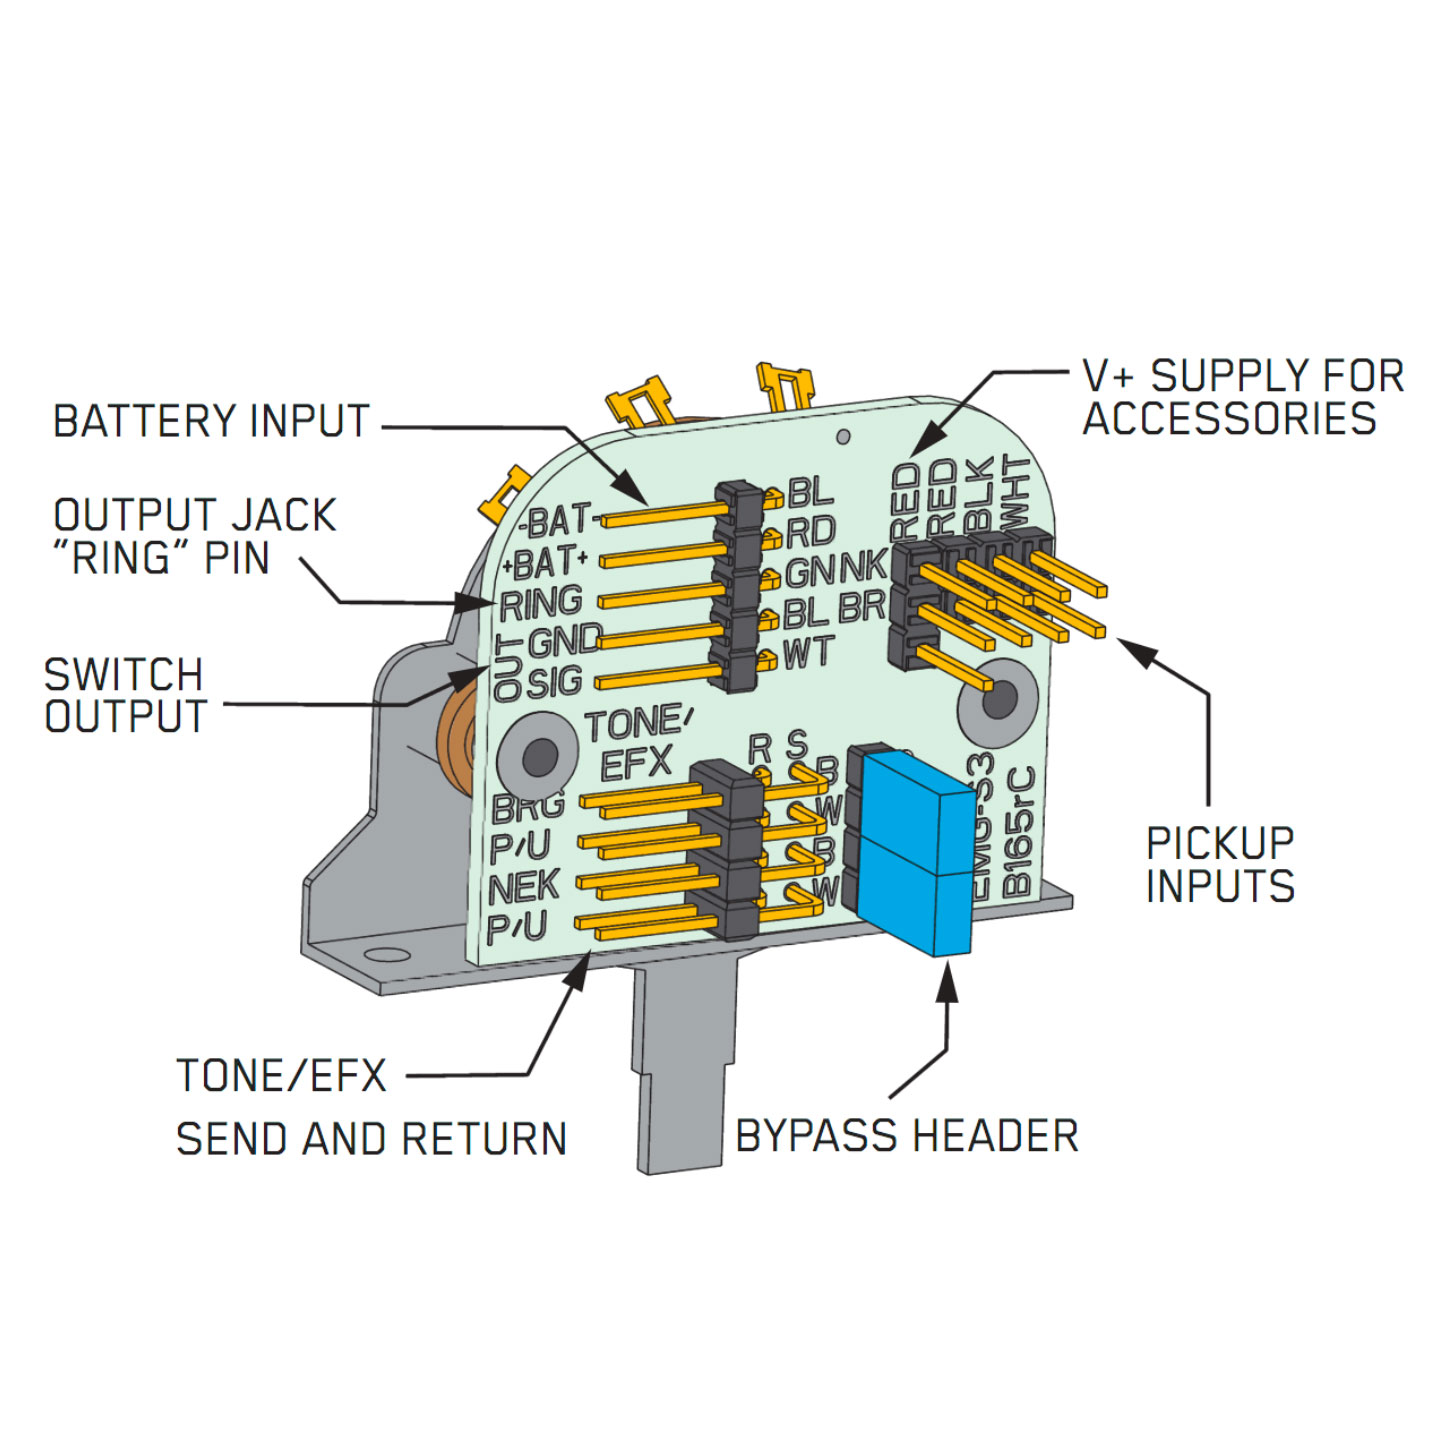 hight resolution of emg wiring diagram 3 way toggle switch wiring library 4 way switch wiring diagram residential